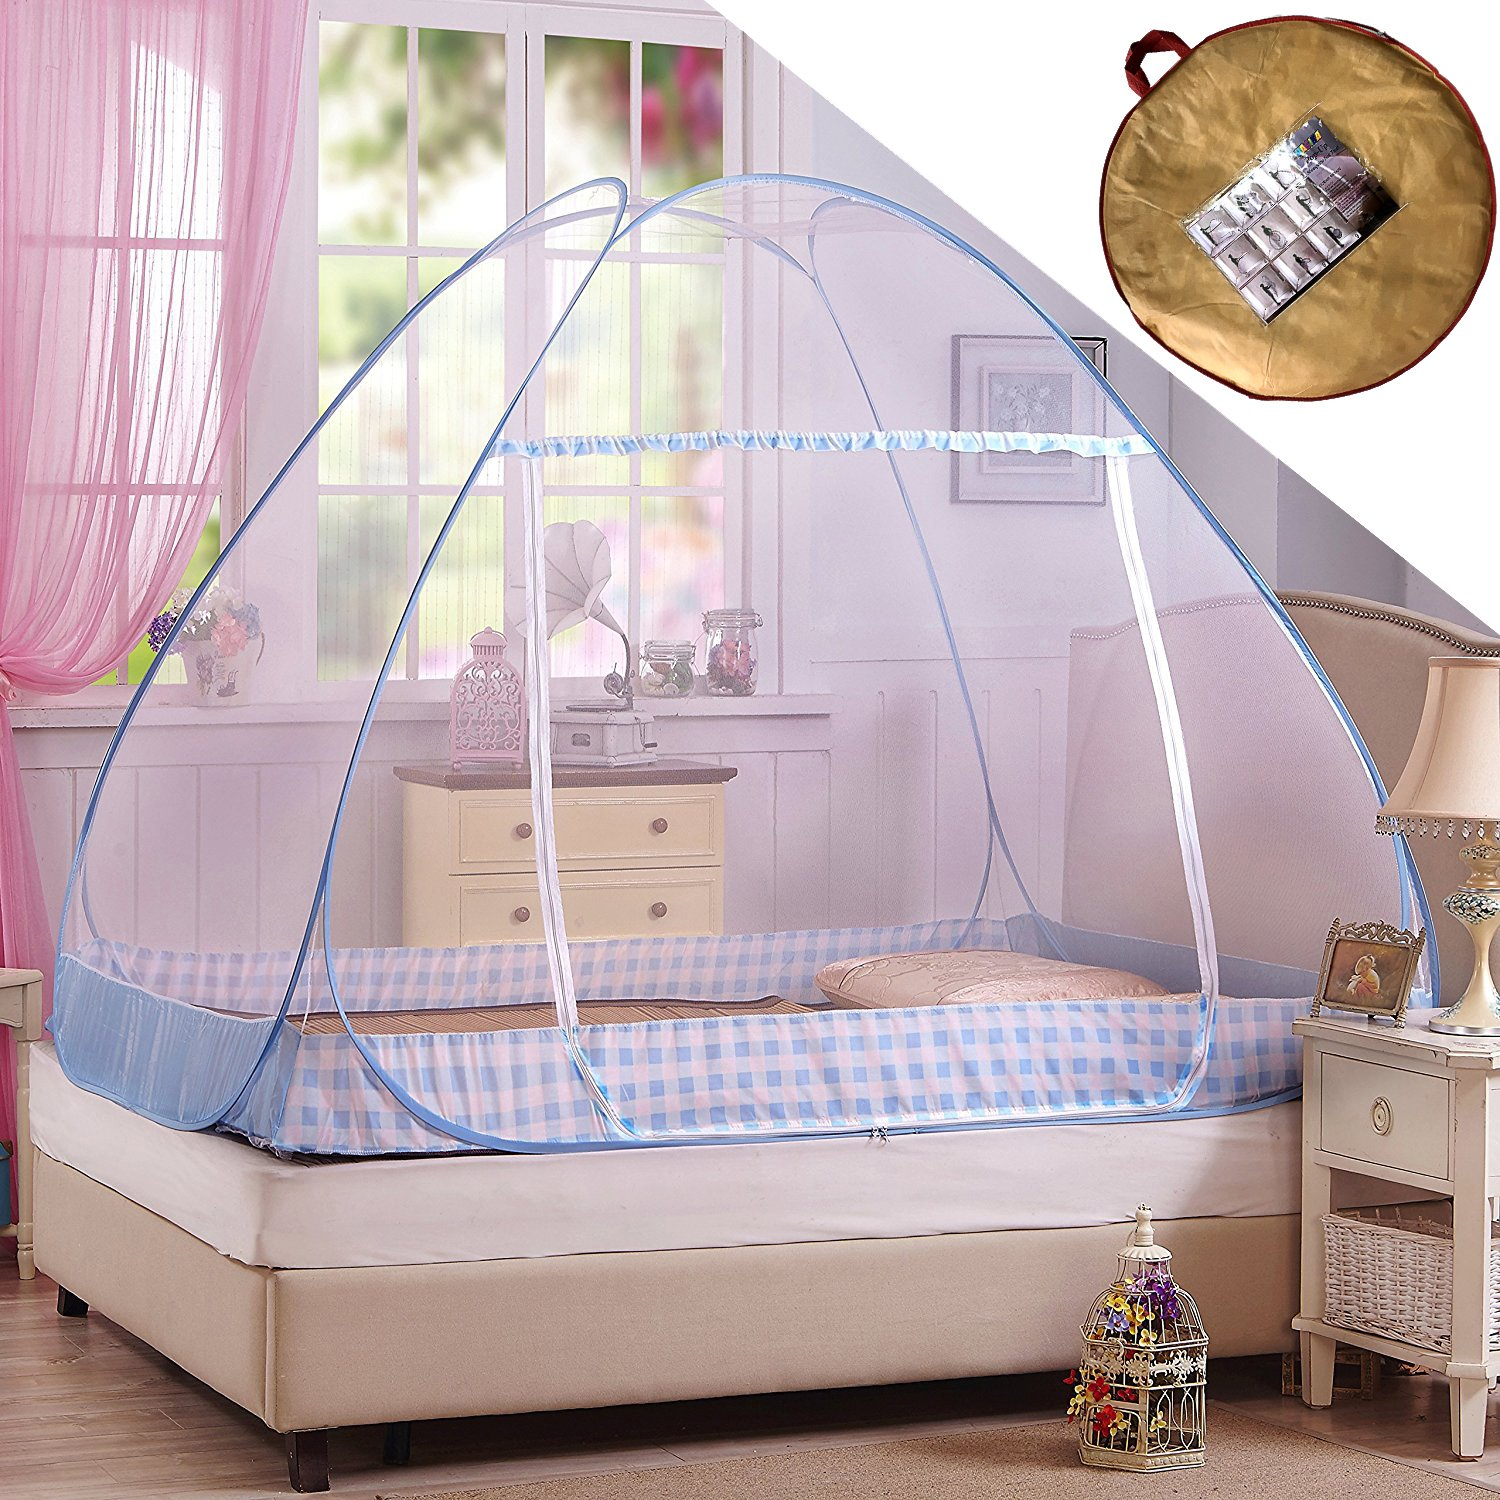 Hasika Pop-Up Mosquito/Folding Mosquito Net Tent Canopy Curtains for Beds Anti Mosquito Bites Folding Design with net Bottom for Babys Adults Trip(47 x 77x 54 inches)